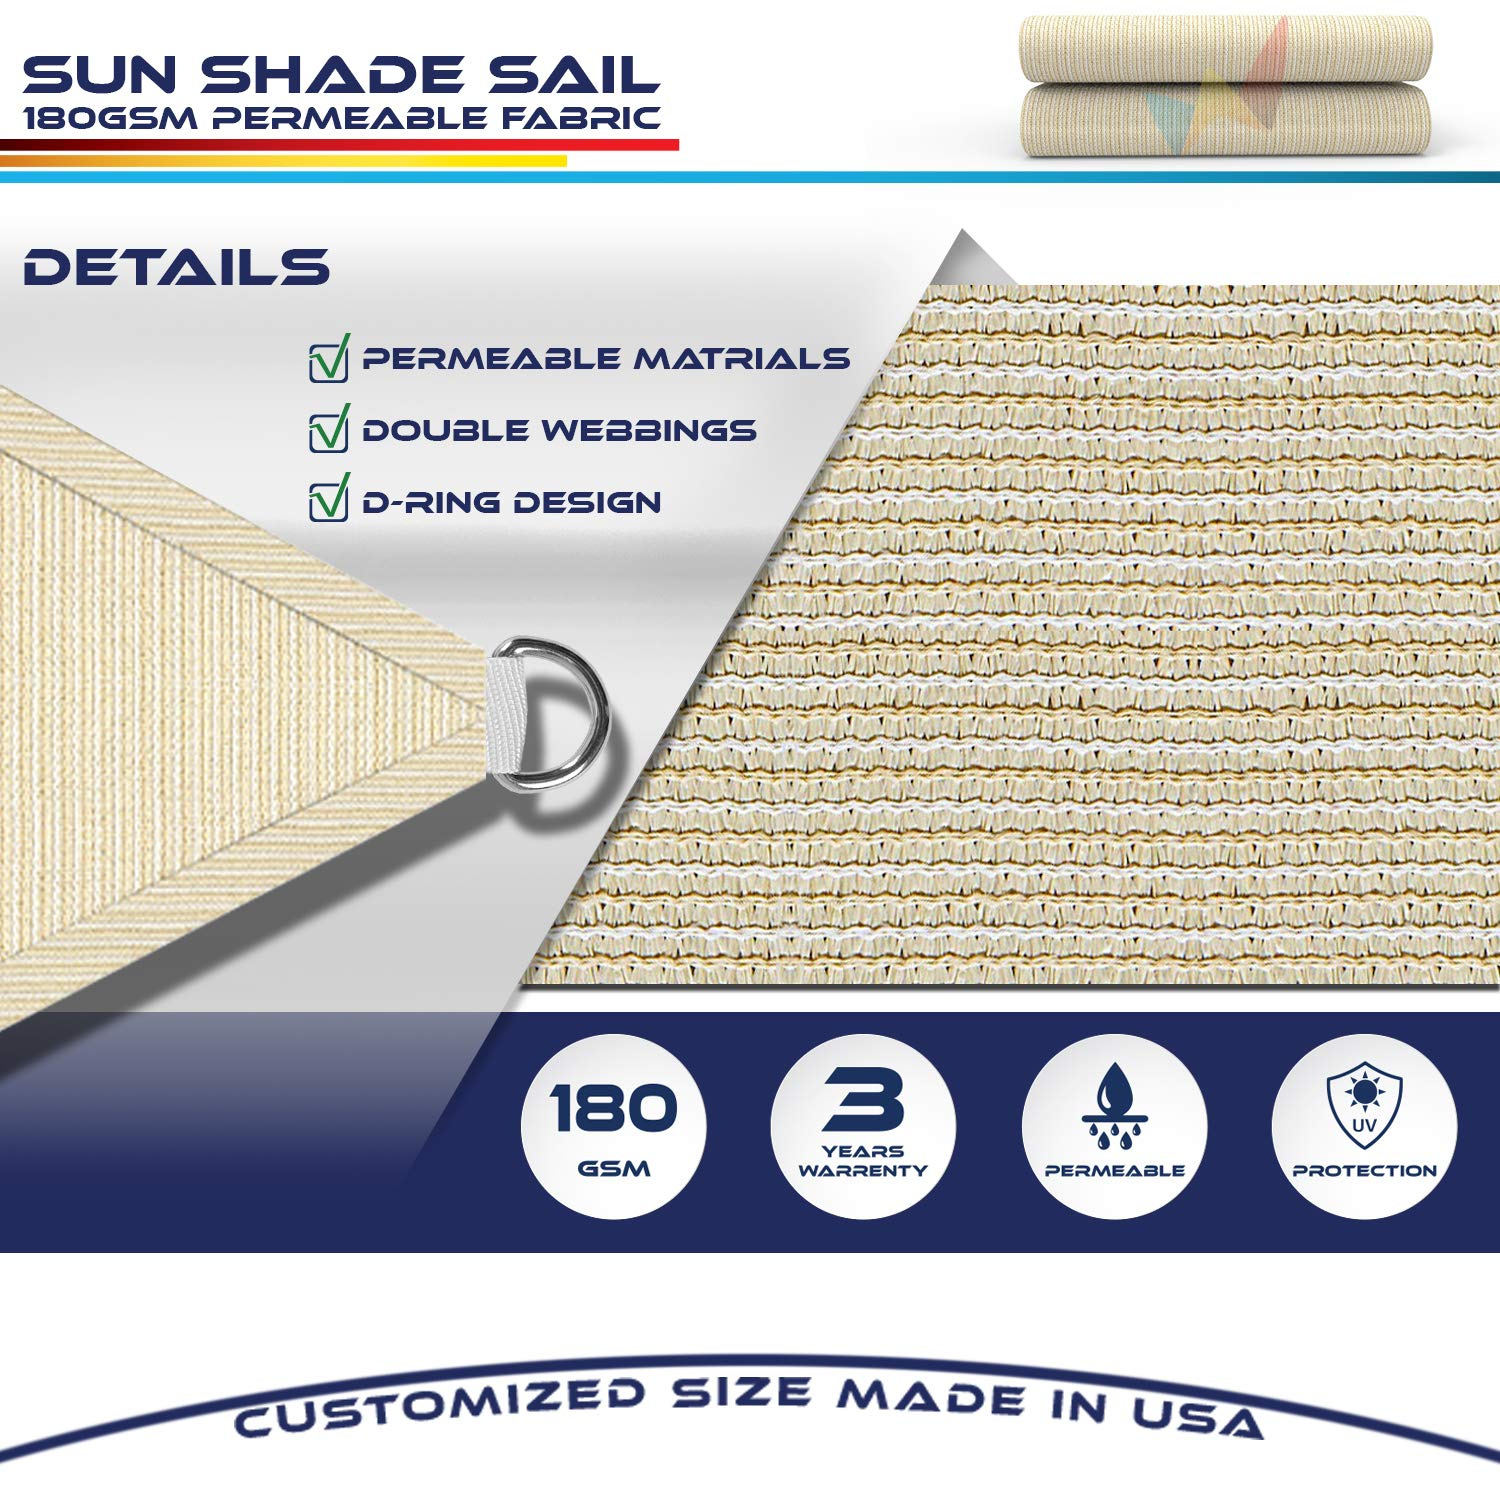 Windscreen4less 16 x 16 x 16 Sun Shade Sail Canopy in Beige with Commercial Grade 3 Year Warranty Customized Sizes Available